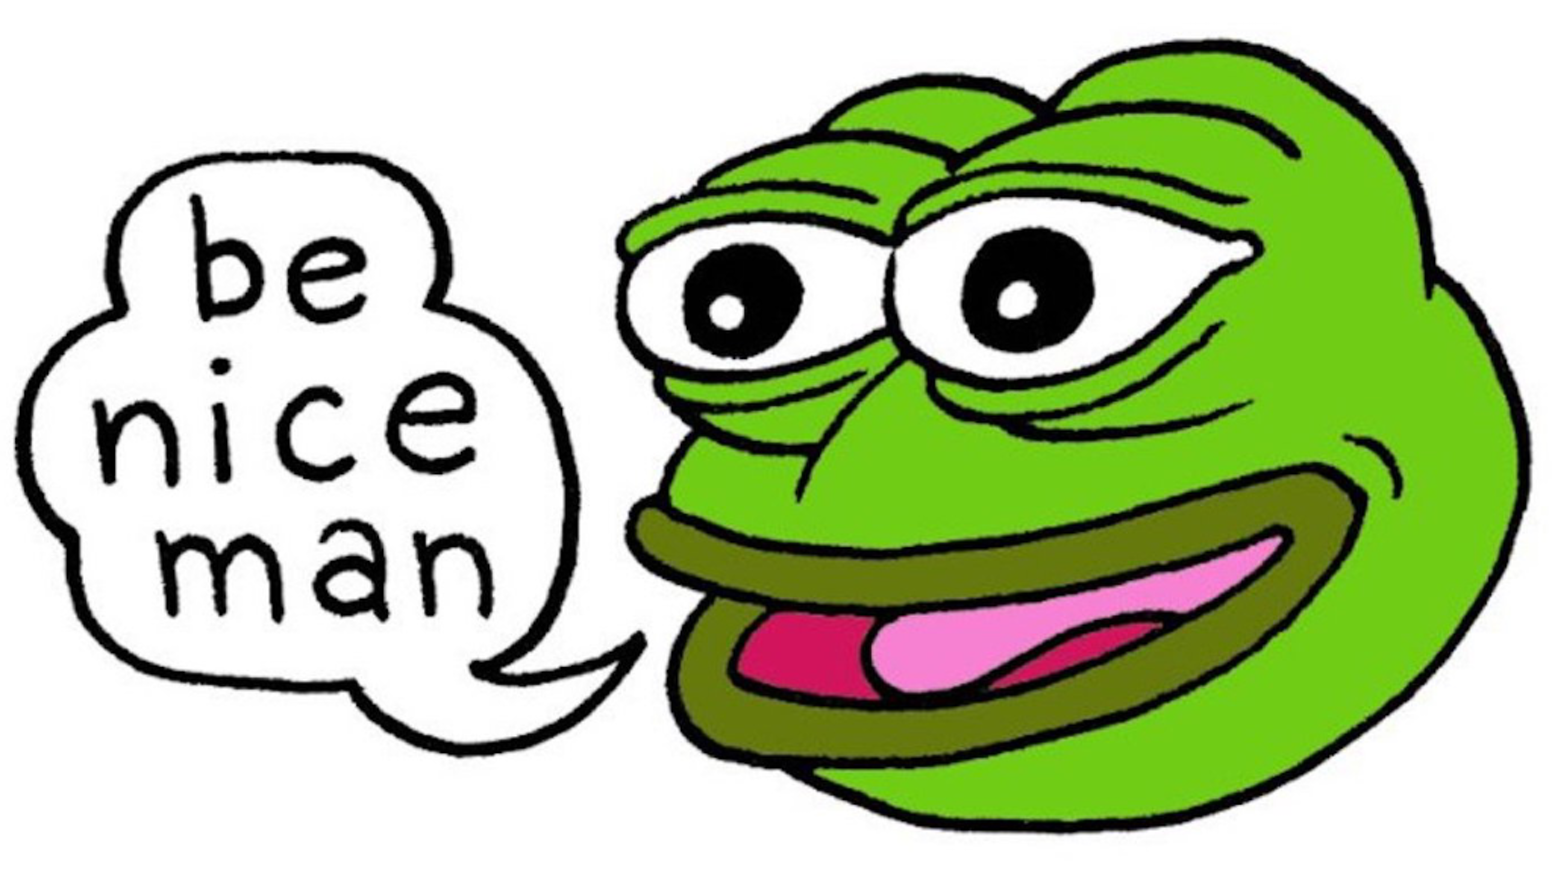 Our aim is to resurrect Pepe the Frog in a new comic book reclaiming his status as a universal symbol for peace, love, and acceptance.